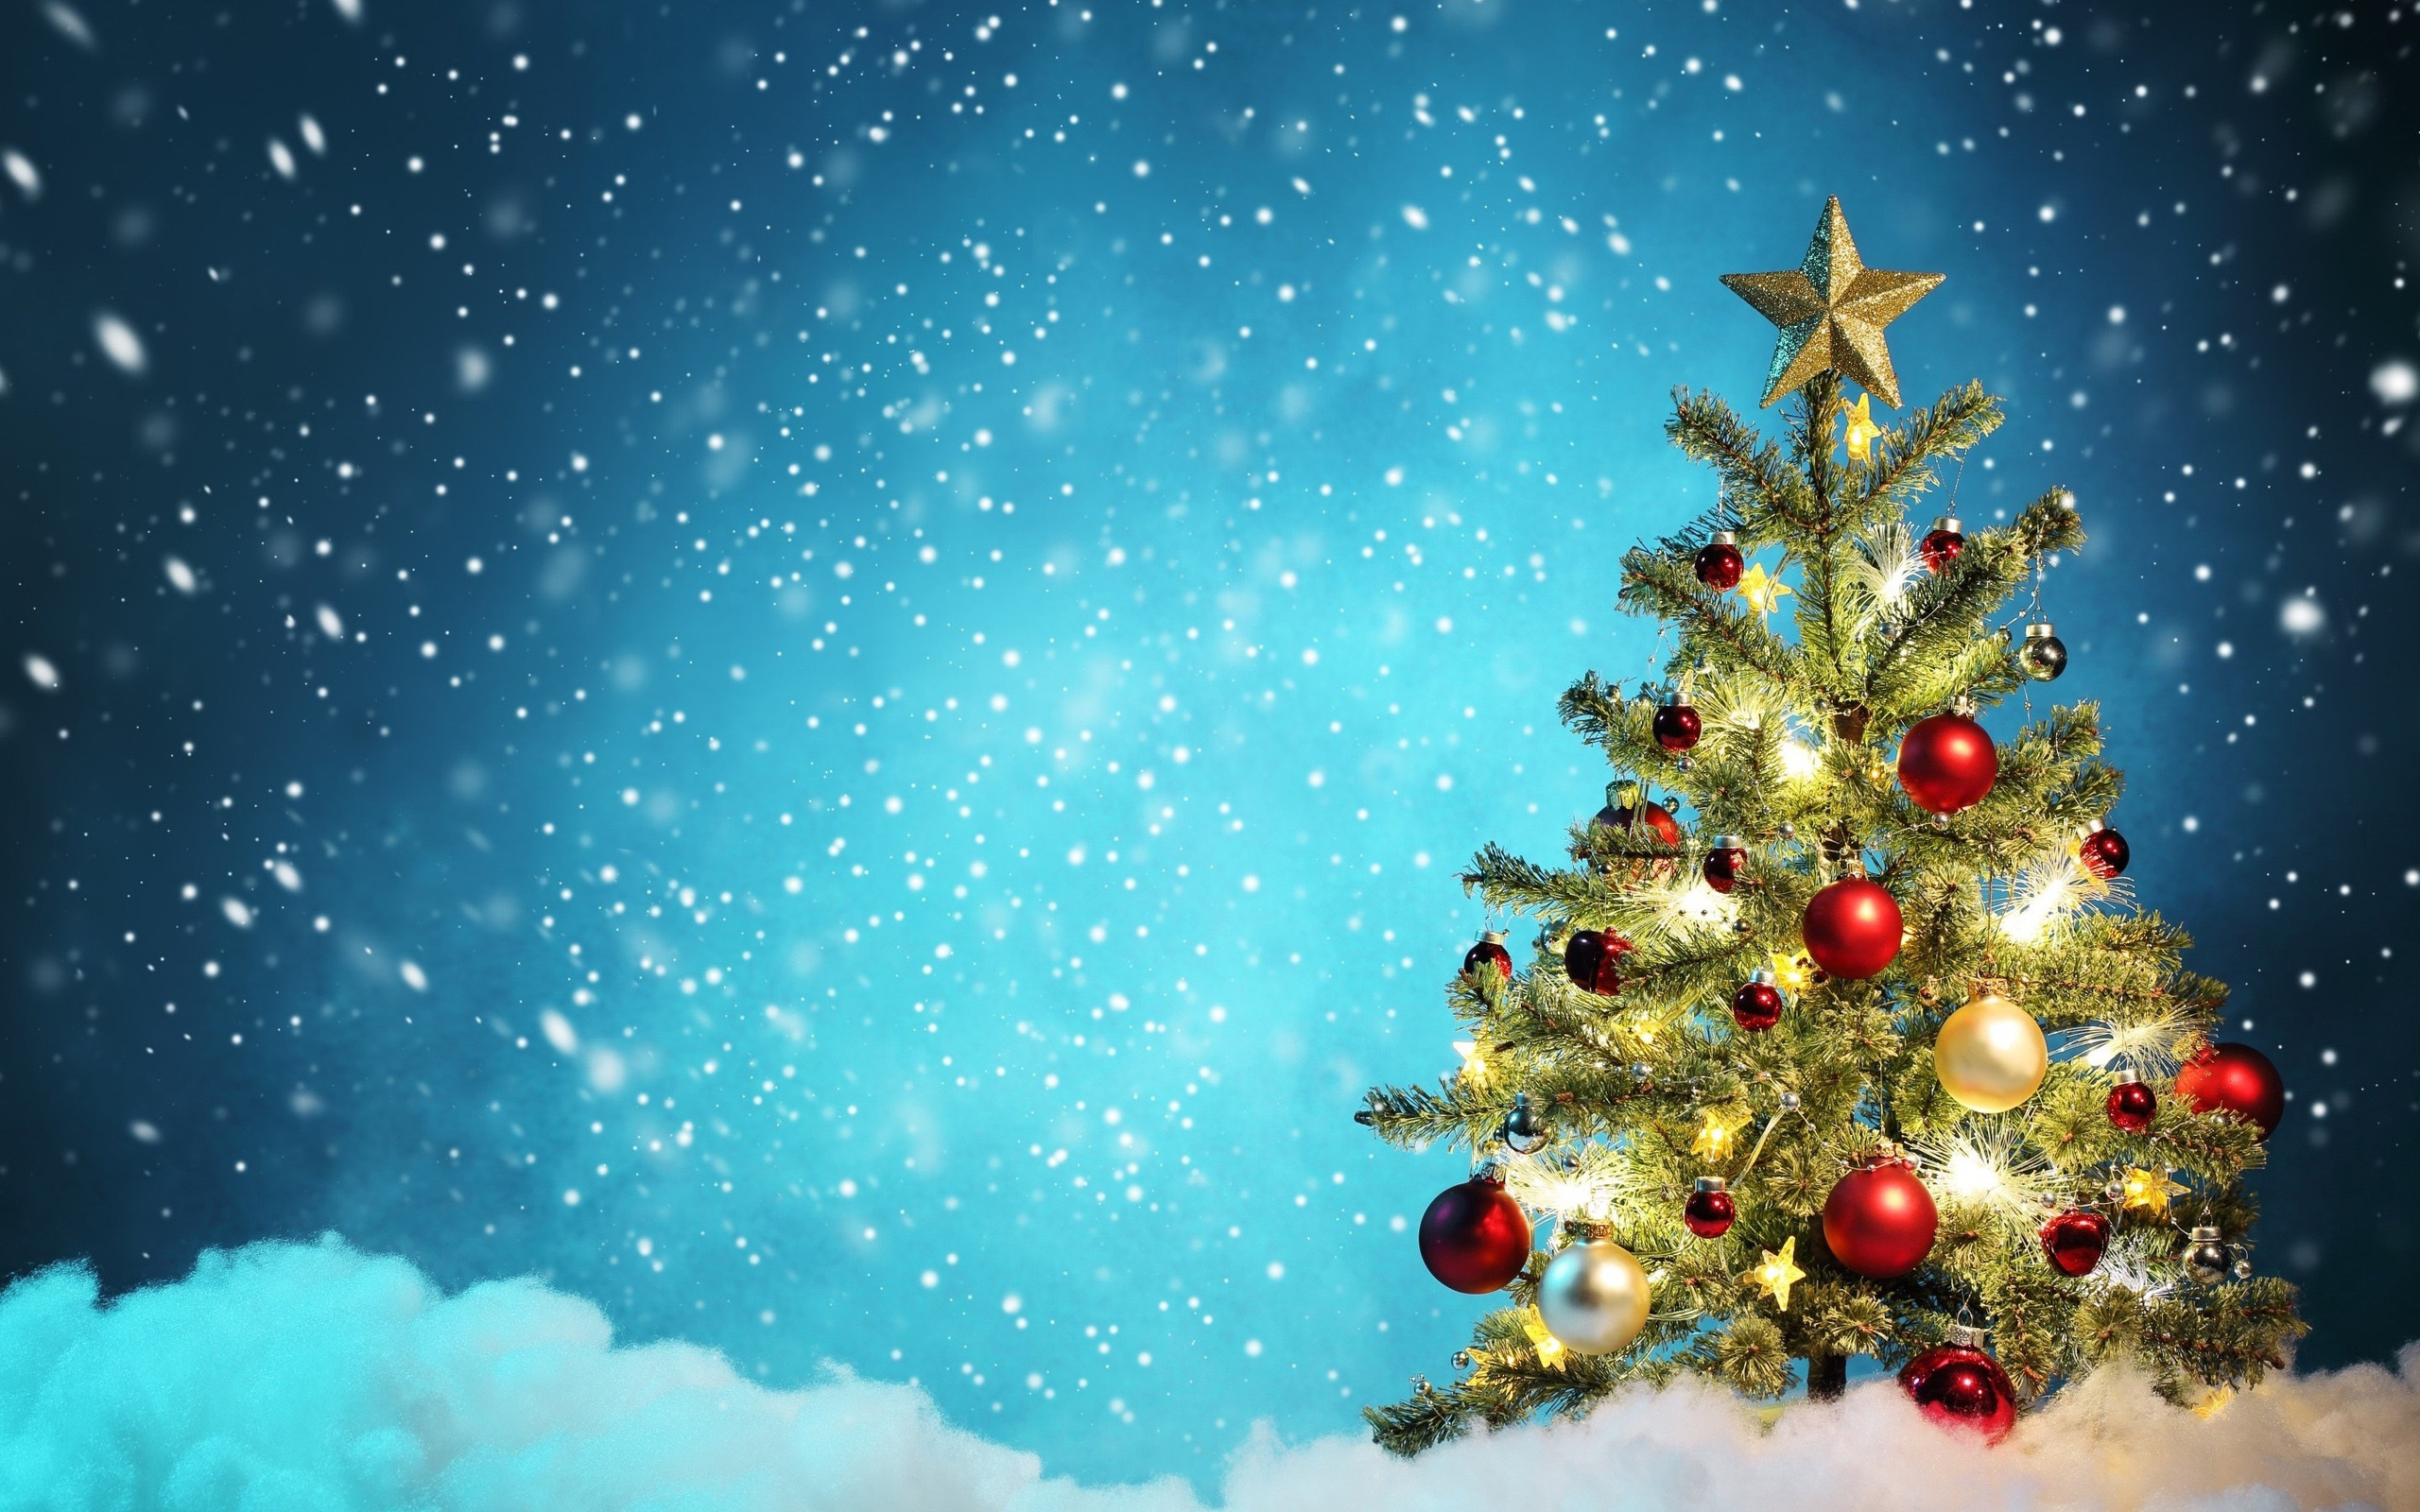 Christmas Tree Images Hd.Christmas Trees Wallpapers 82 Background Pictures